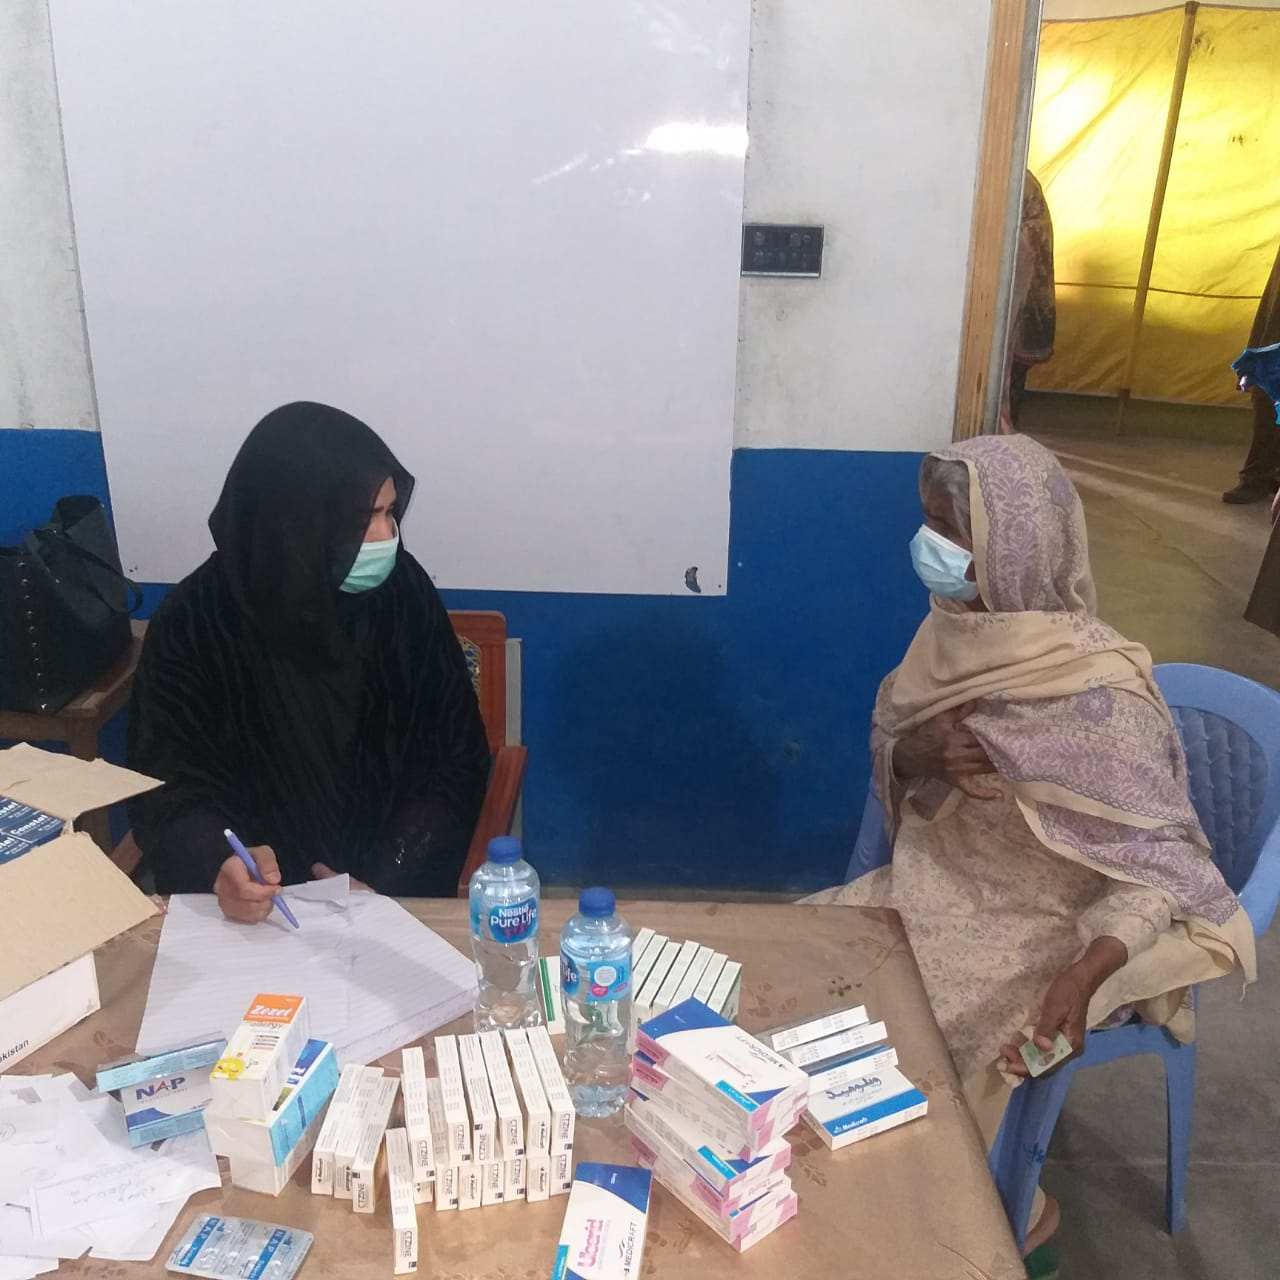 Zilah Chakwal ke ilaqa کھوکھرزیر mein aik roza free medical camp - 5